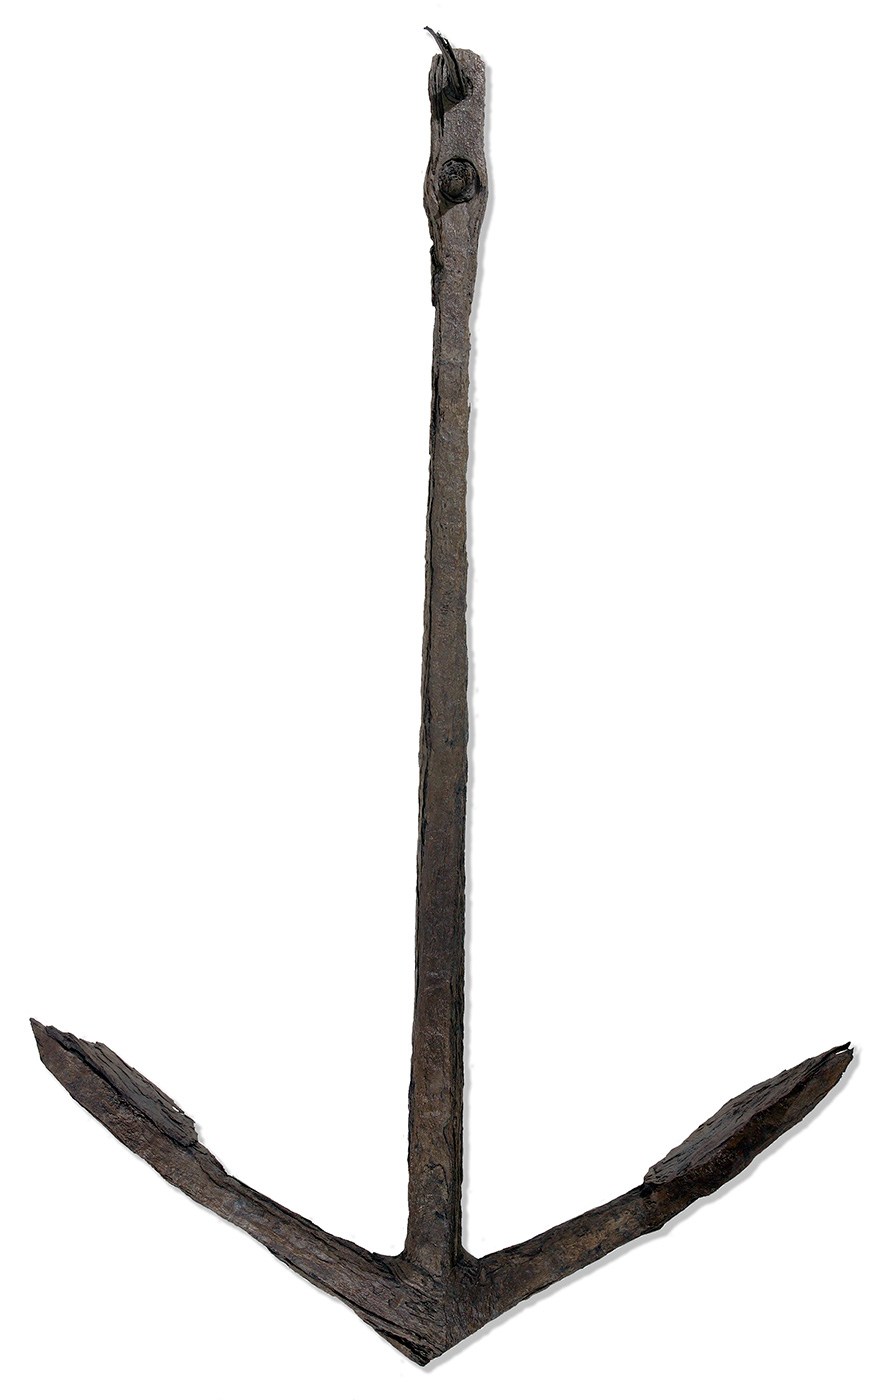 A large anchor, dark brown in colour, and rusted in appearance. - click to view larger image